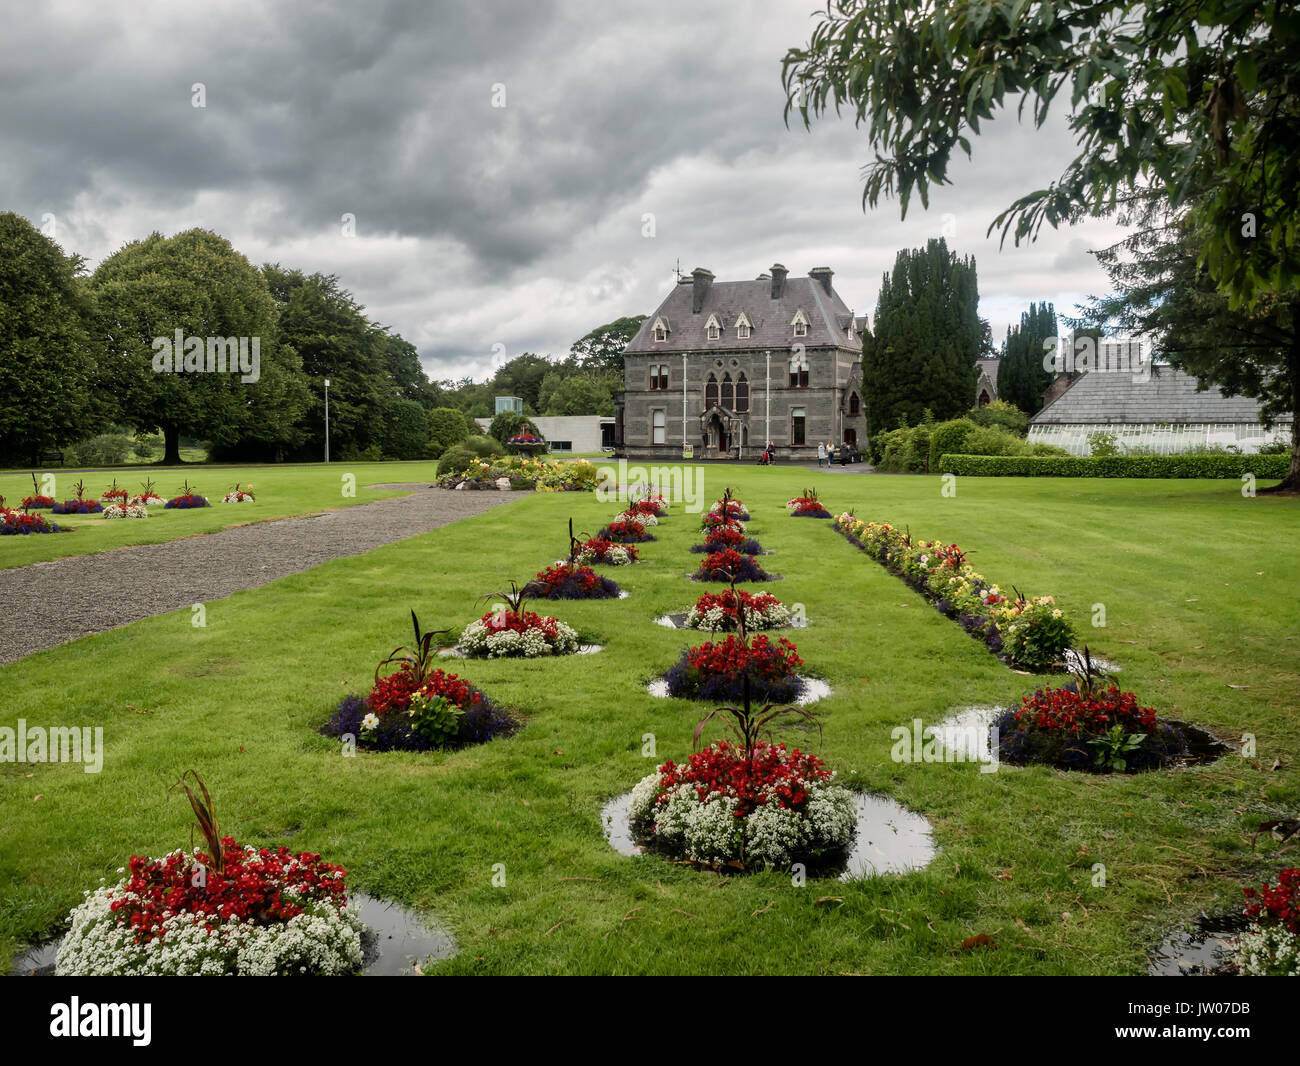 Genial Countrylife Museum In Castlebar County Mayo In Ireland   Stock Image